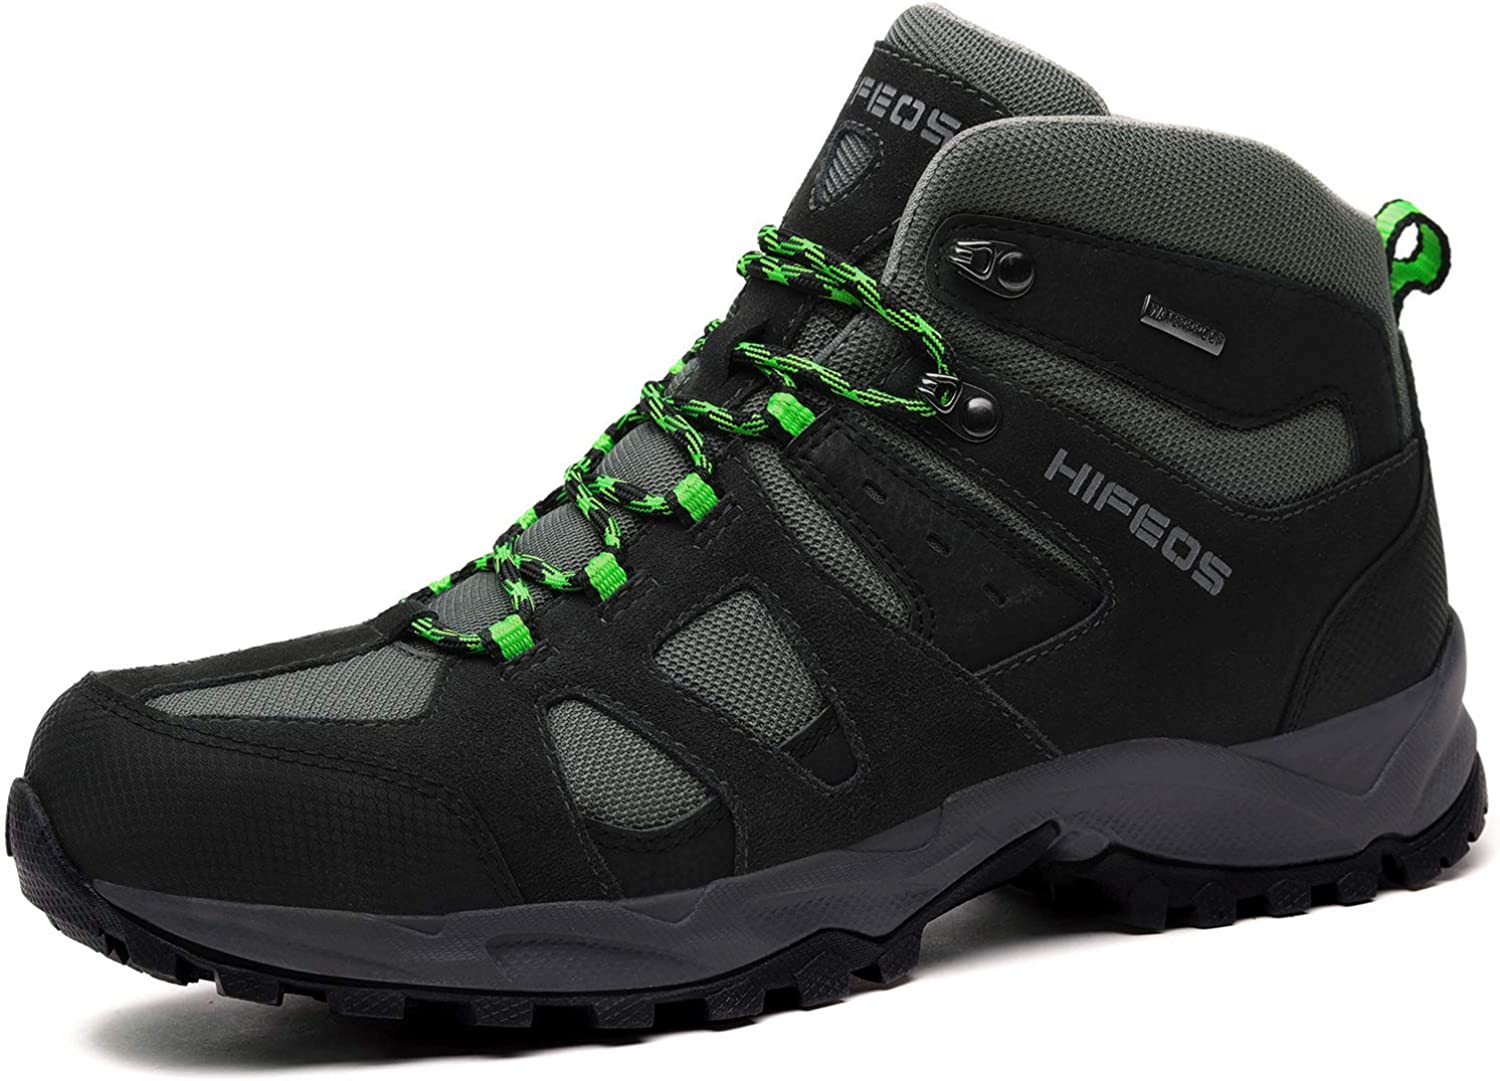 HIFEOS Hiking Boots Leather Trekking Shoes Outdoor Waterproof Backpacking Shoe